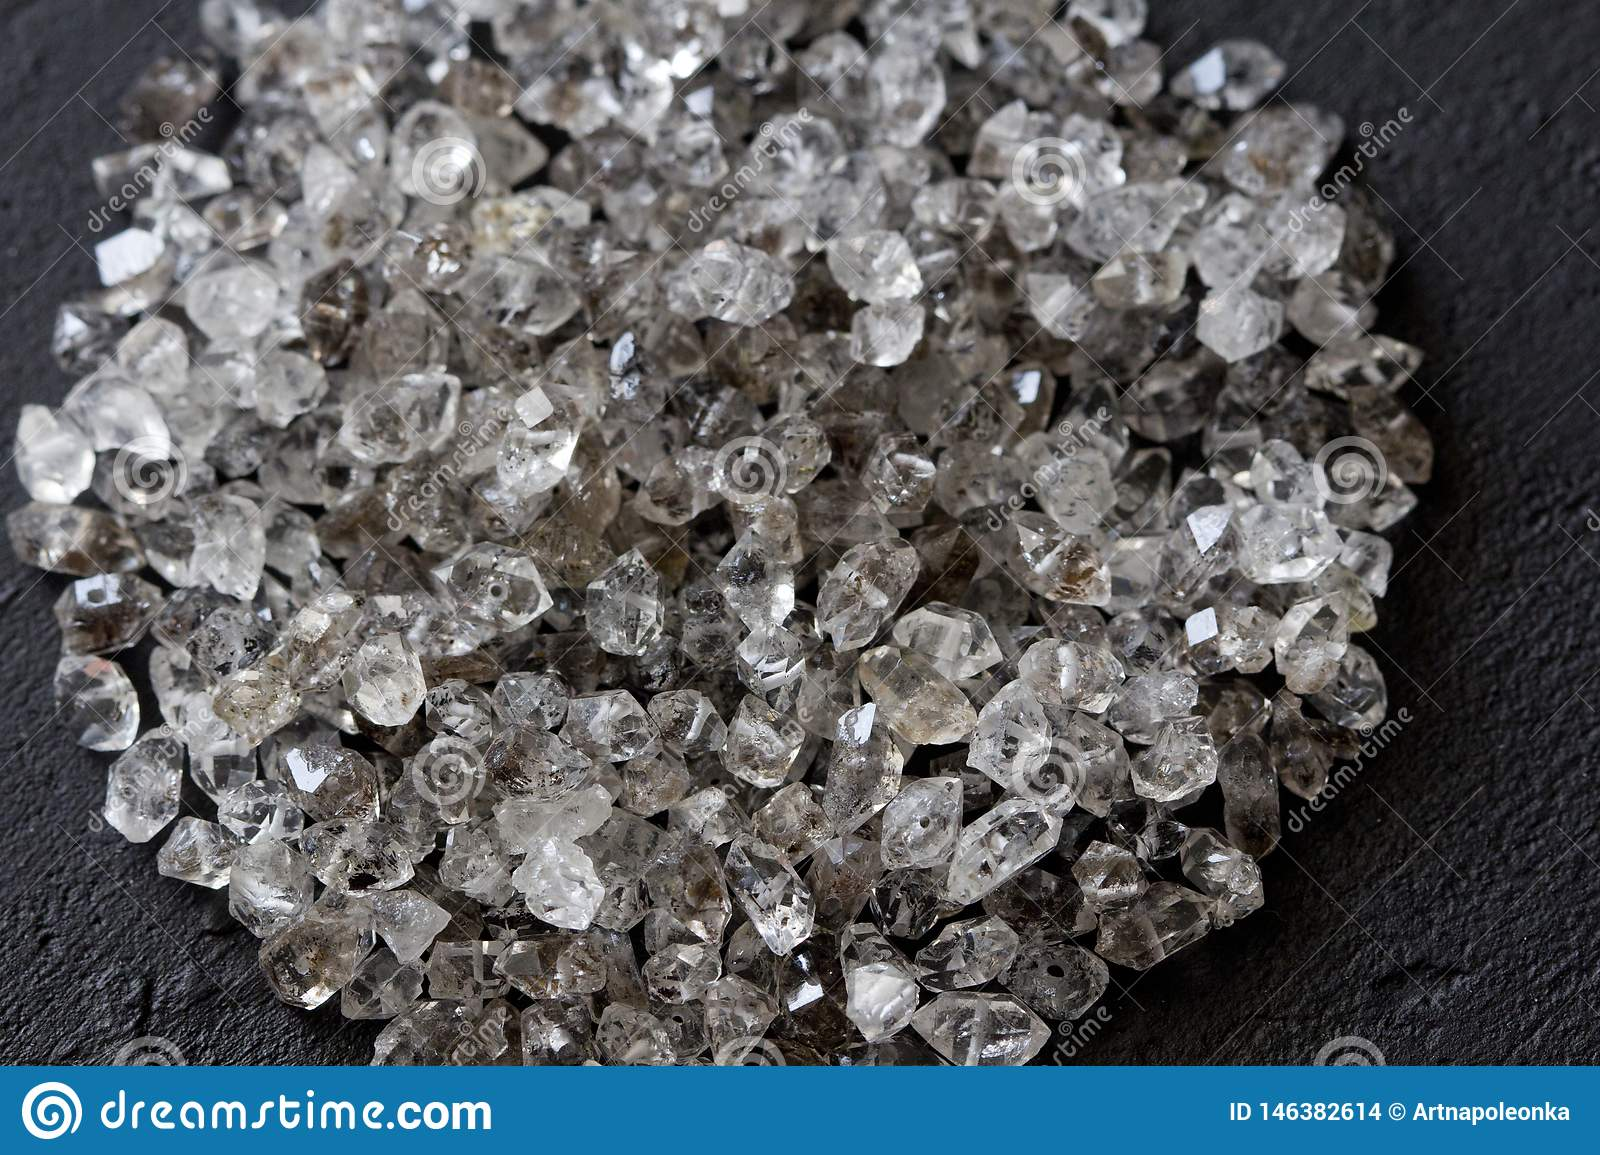 Scattered Diamonds On A Black Background Raw Diamonds And Mining A Scattering Of Natural Diamond Stones Graphite Quartz Stock Photo Image Of Glint Concept 146382614